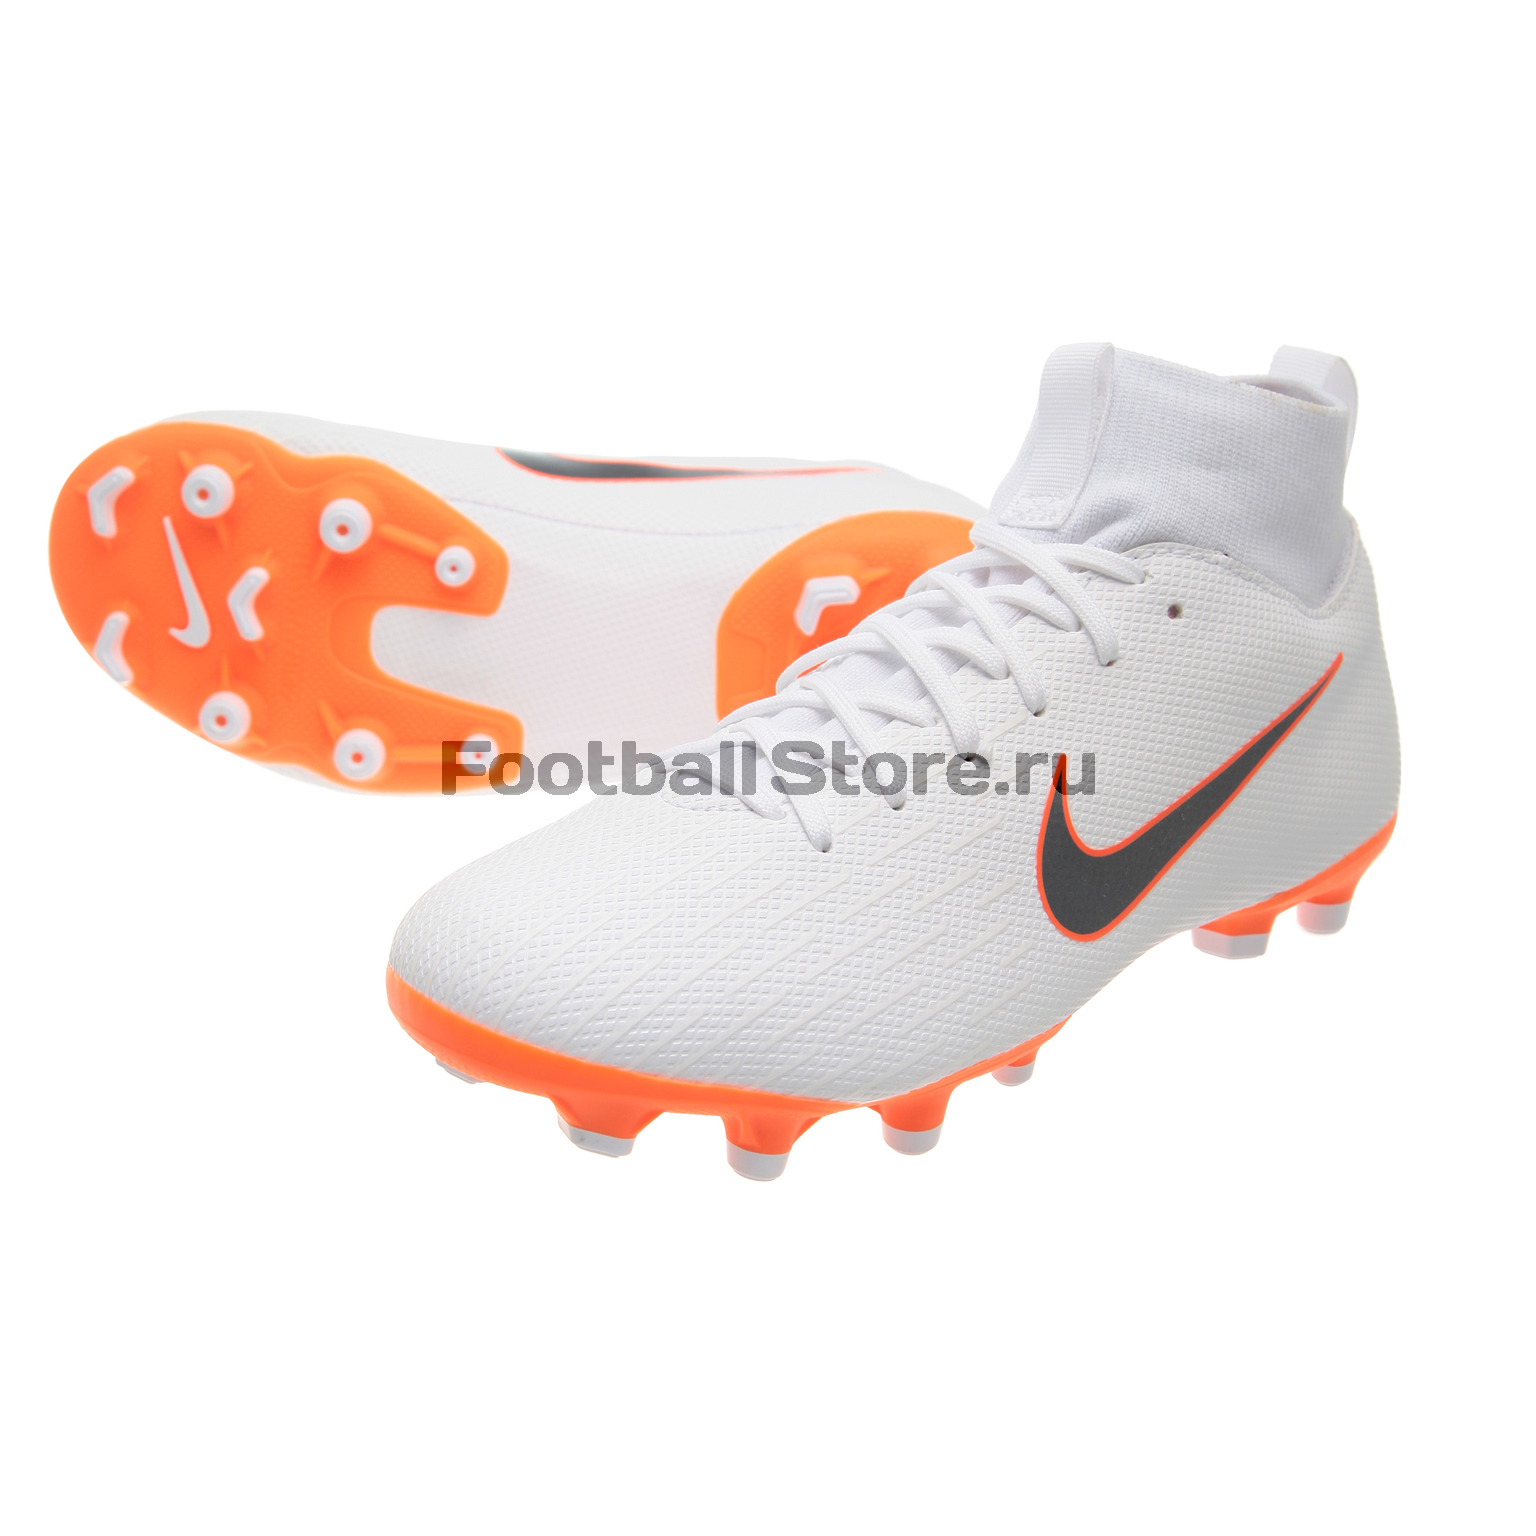 Бутсы Nike JR Superfly 6 Academy GS FG/MG AH7337-107 бутсы nike шиповки nike jr tiempox legend vi tf 819191 018